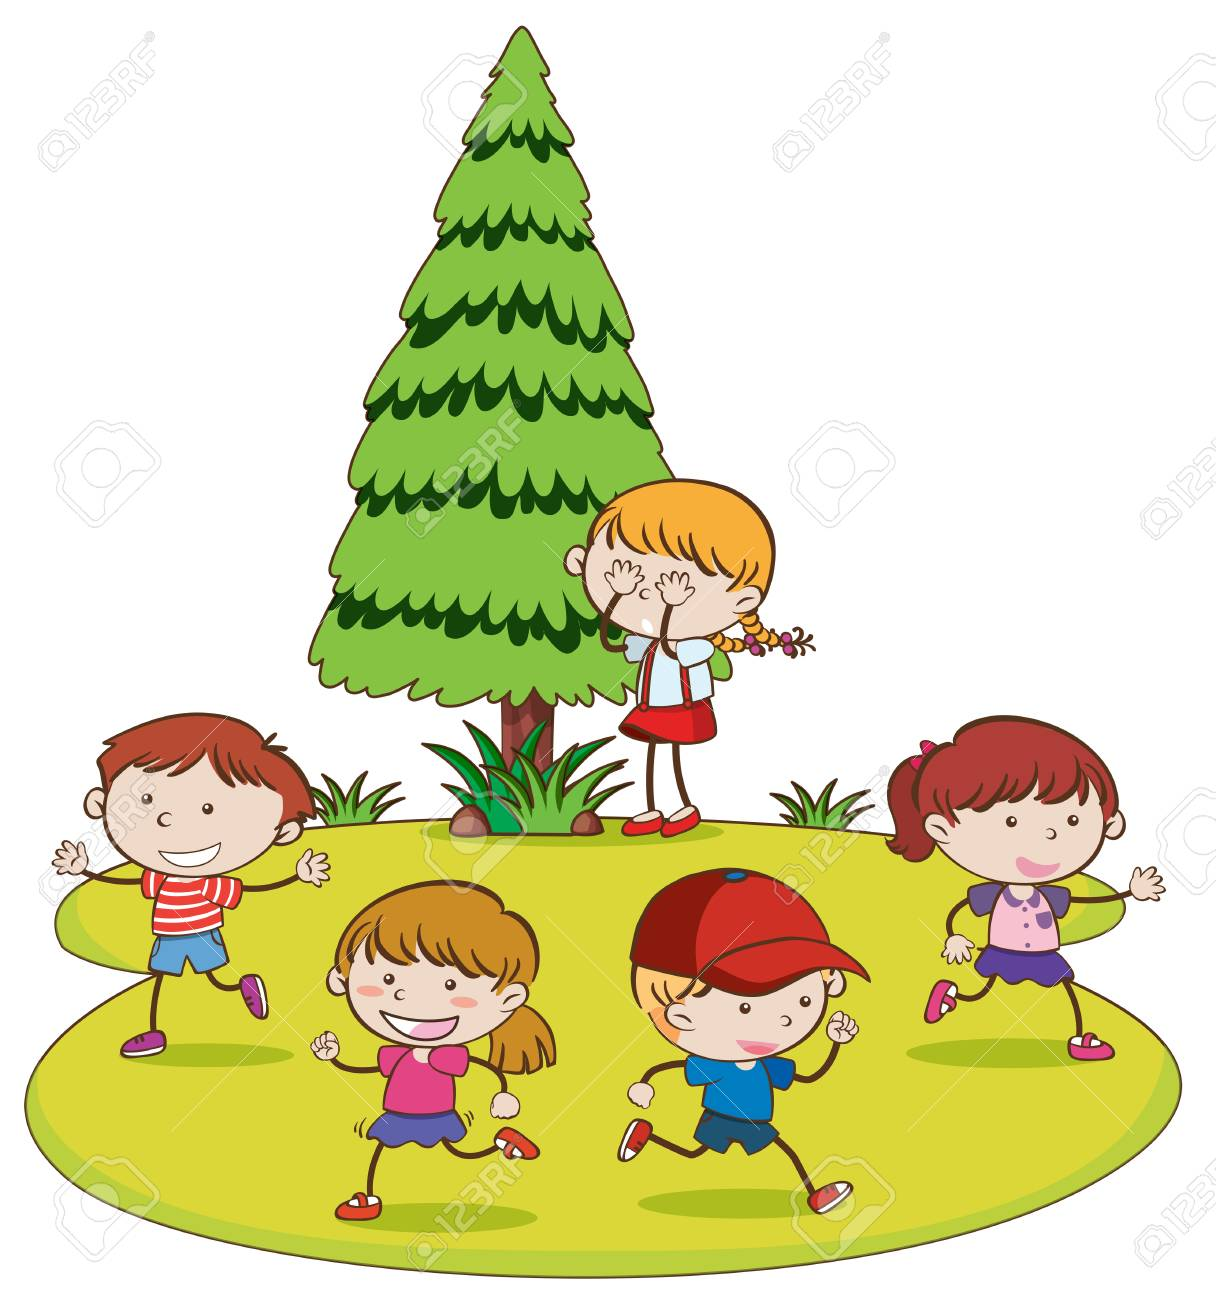 Kids Playing Hide and Seek in Park illustration.